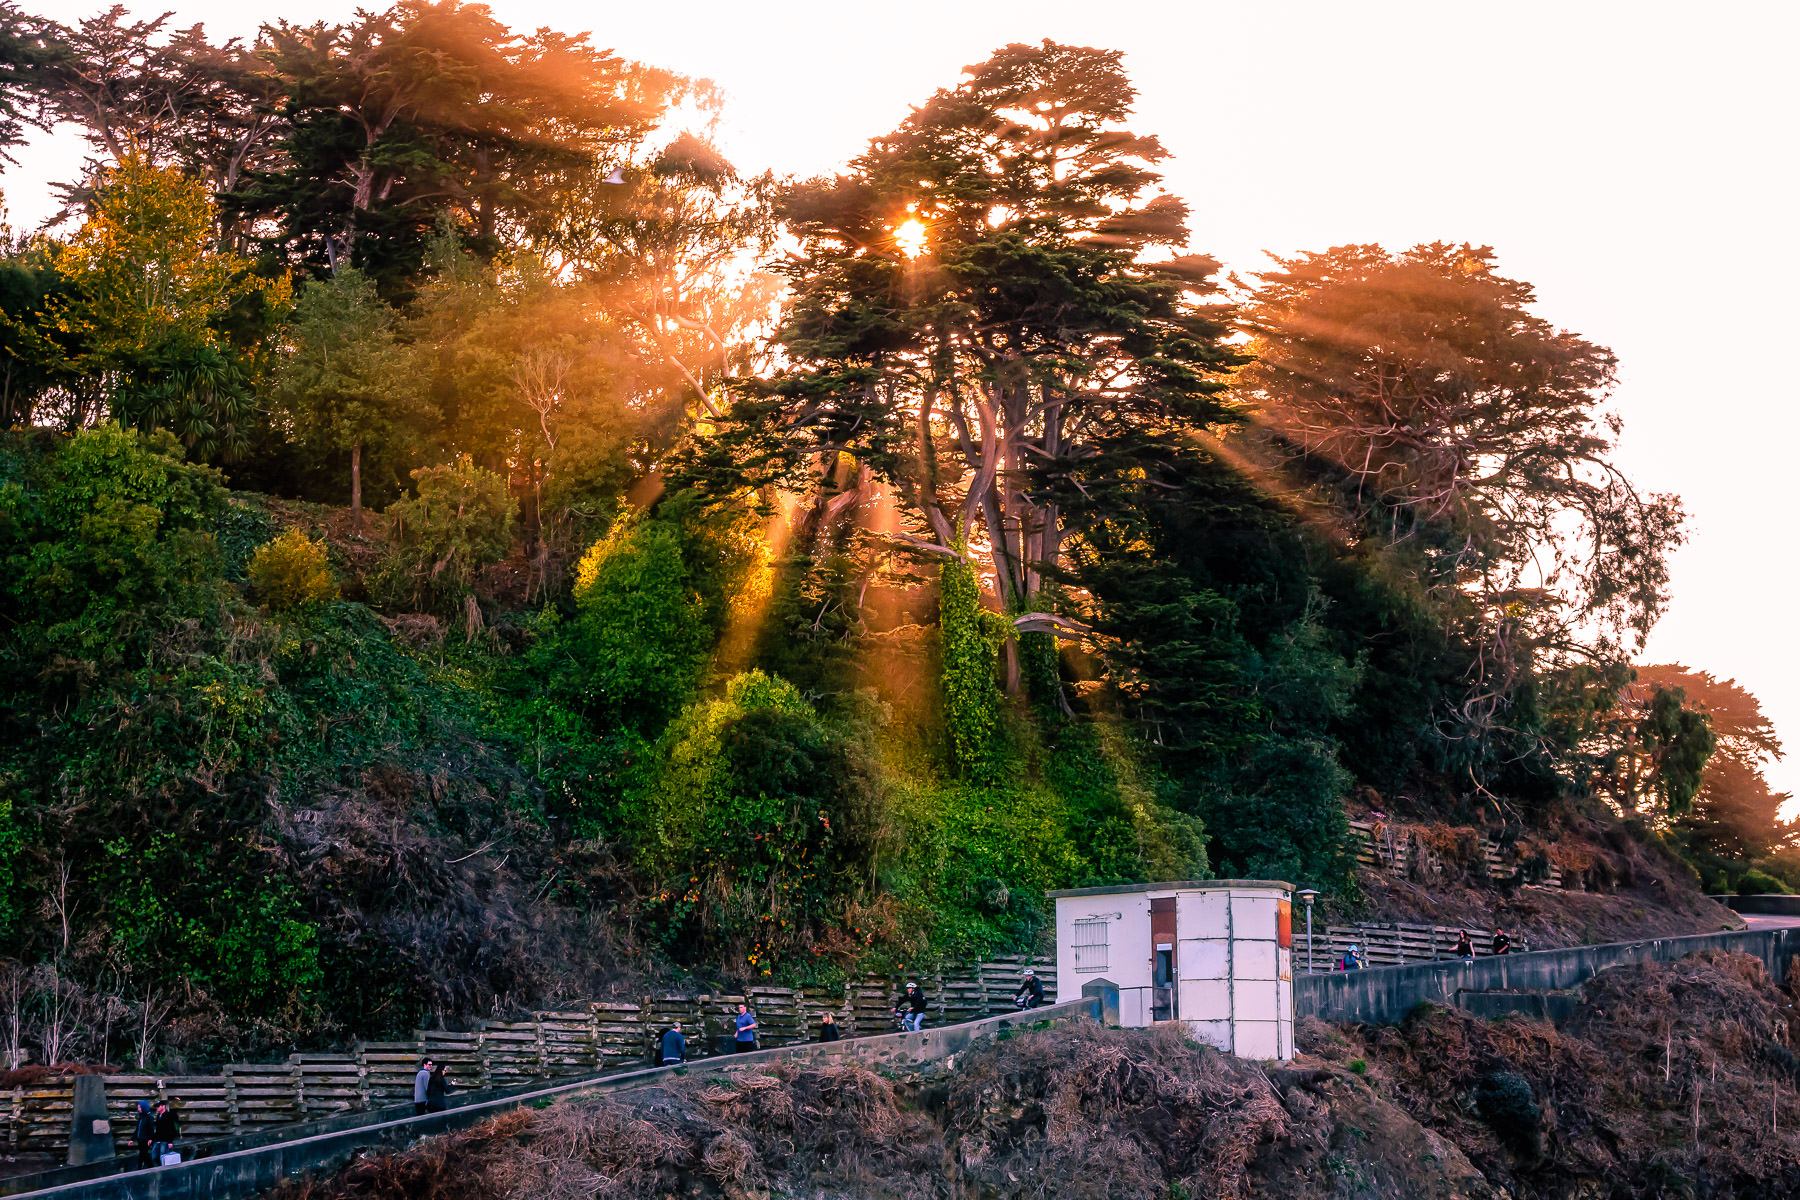 The late afternoon sun pours through trees along a path leading from San Francisco's Aquatic Park to the historic Fort Mason.